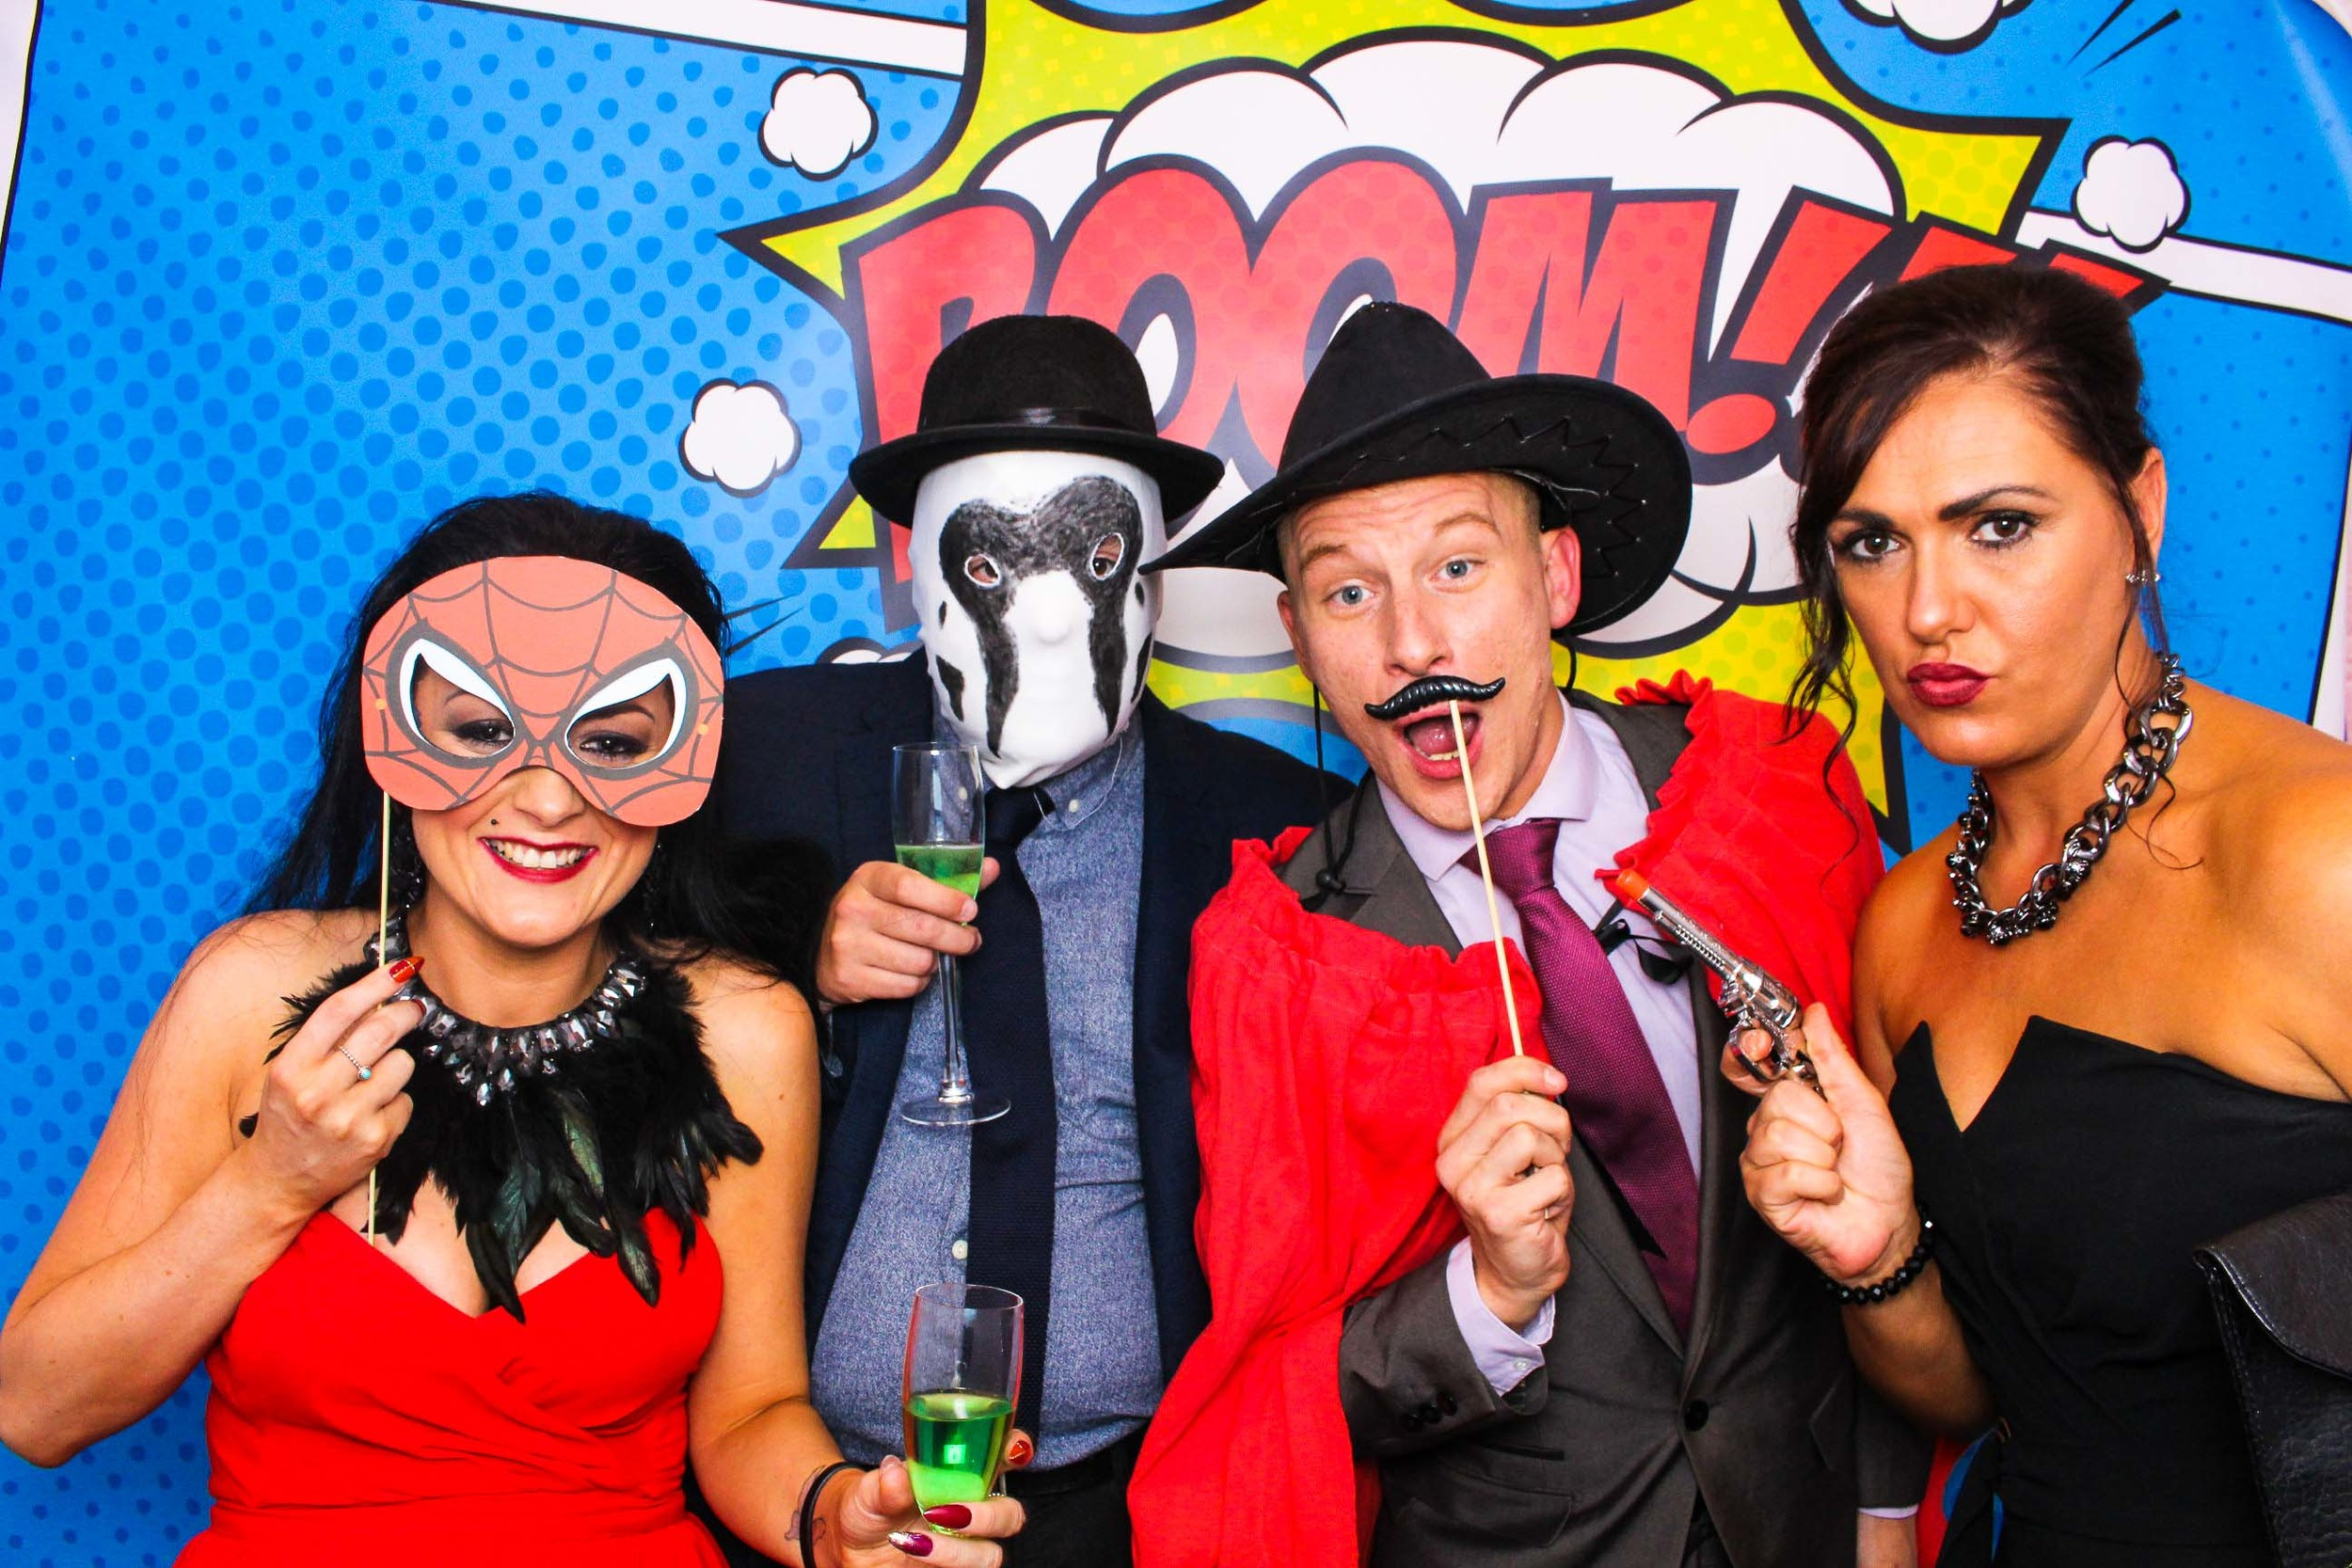 Fotoauto Photo Booth Hire - Shop Direct-37.jpg